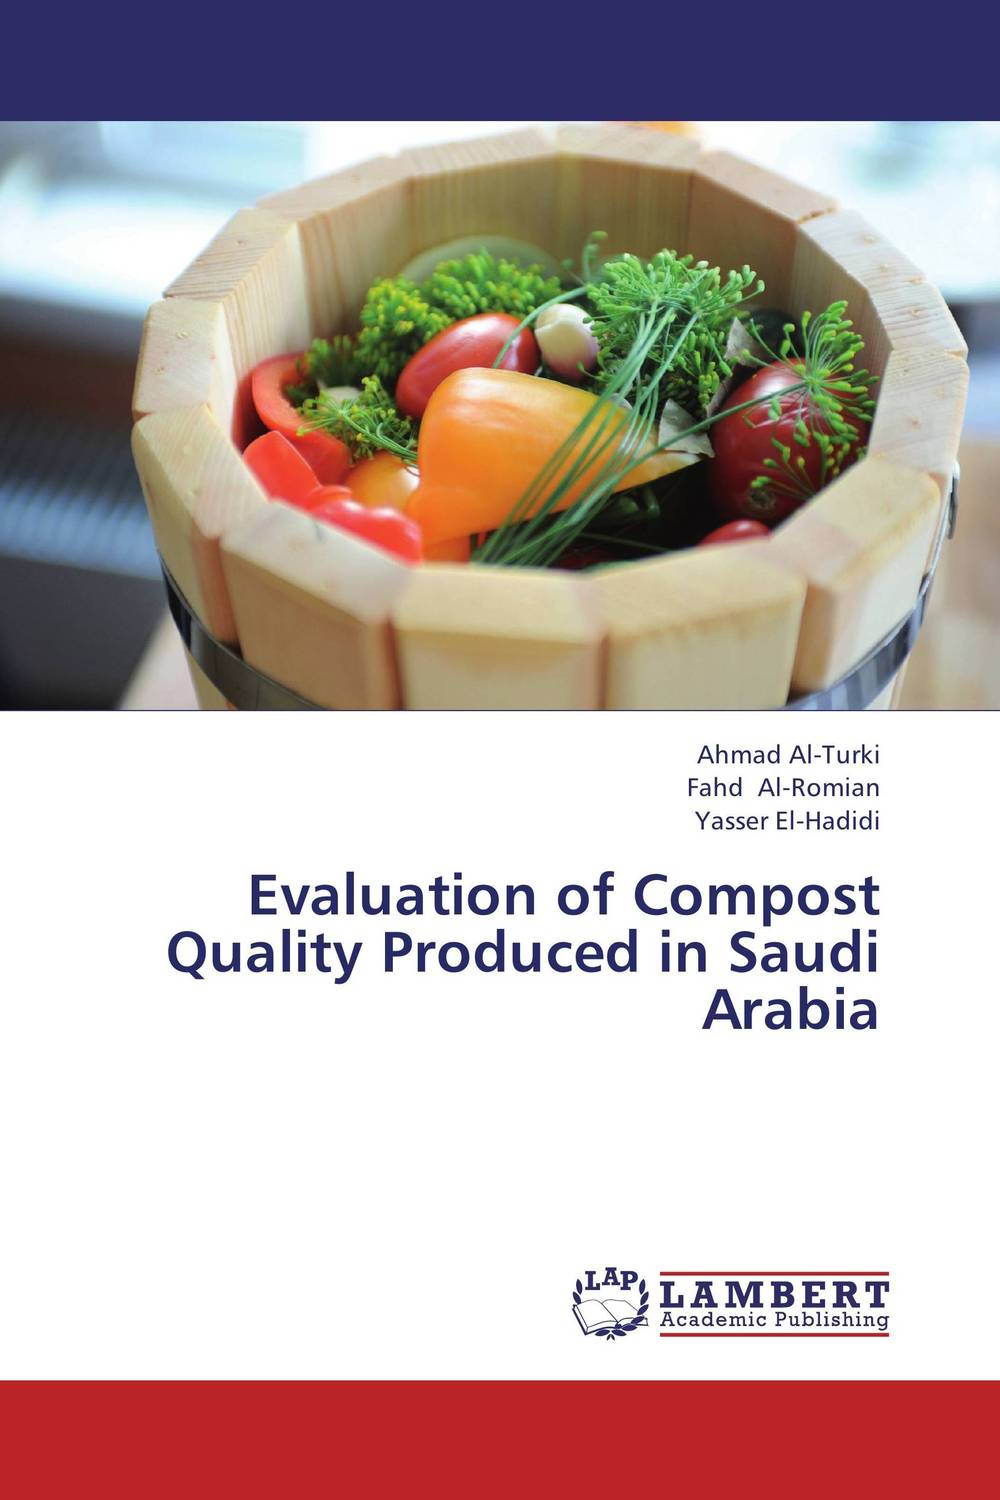 Evaluation of Compost Quality Produced in Saudi Arabia rajhans verma santosh kumar pandey and w p badole effect of methods of composting on quality of compost from wheat straw